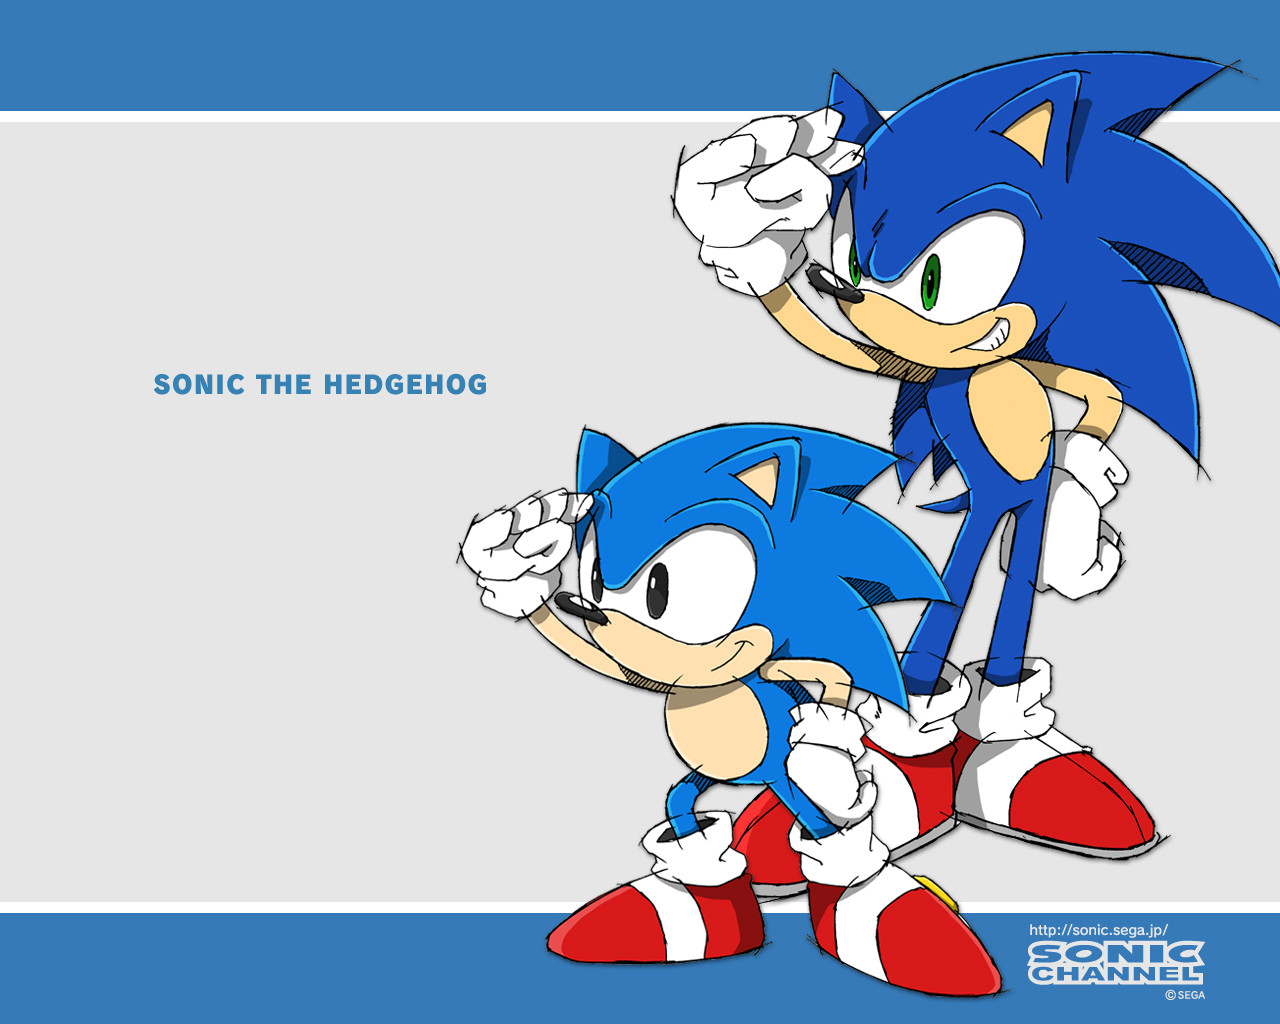 Sonic The Hedgehog Wallpaper 1280x1024 5159